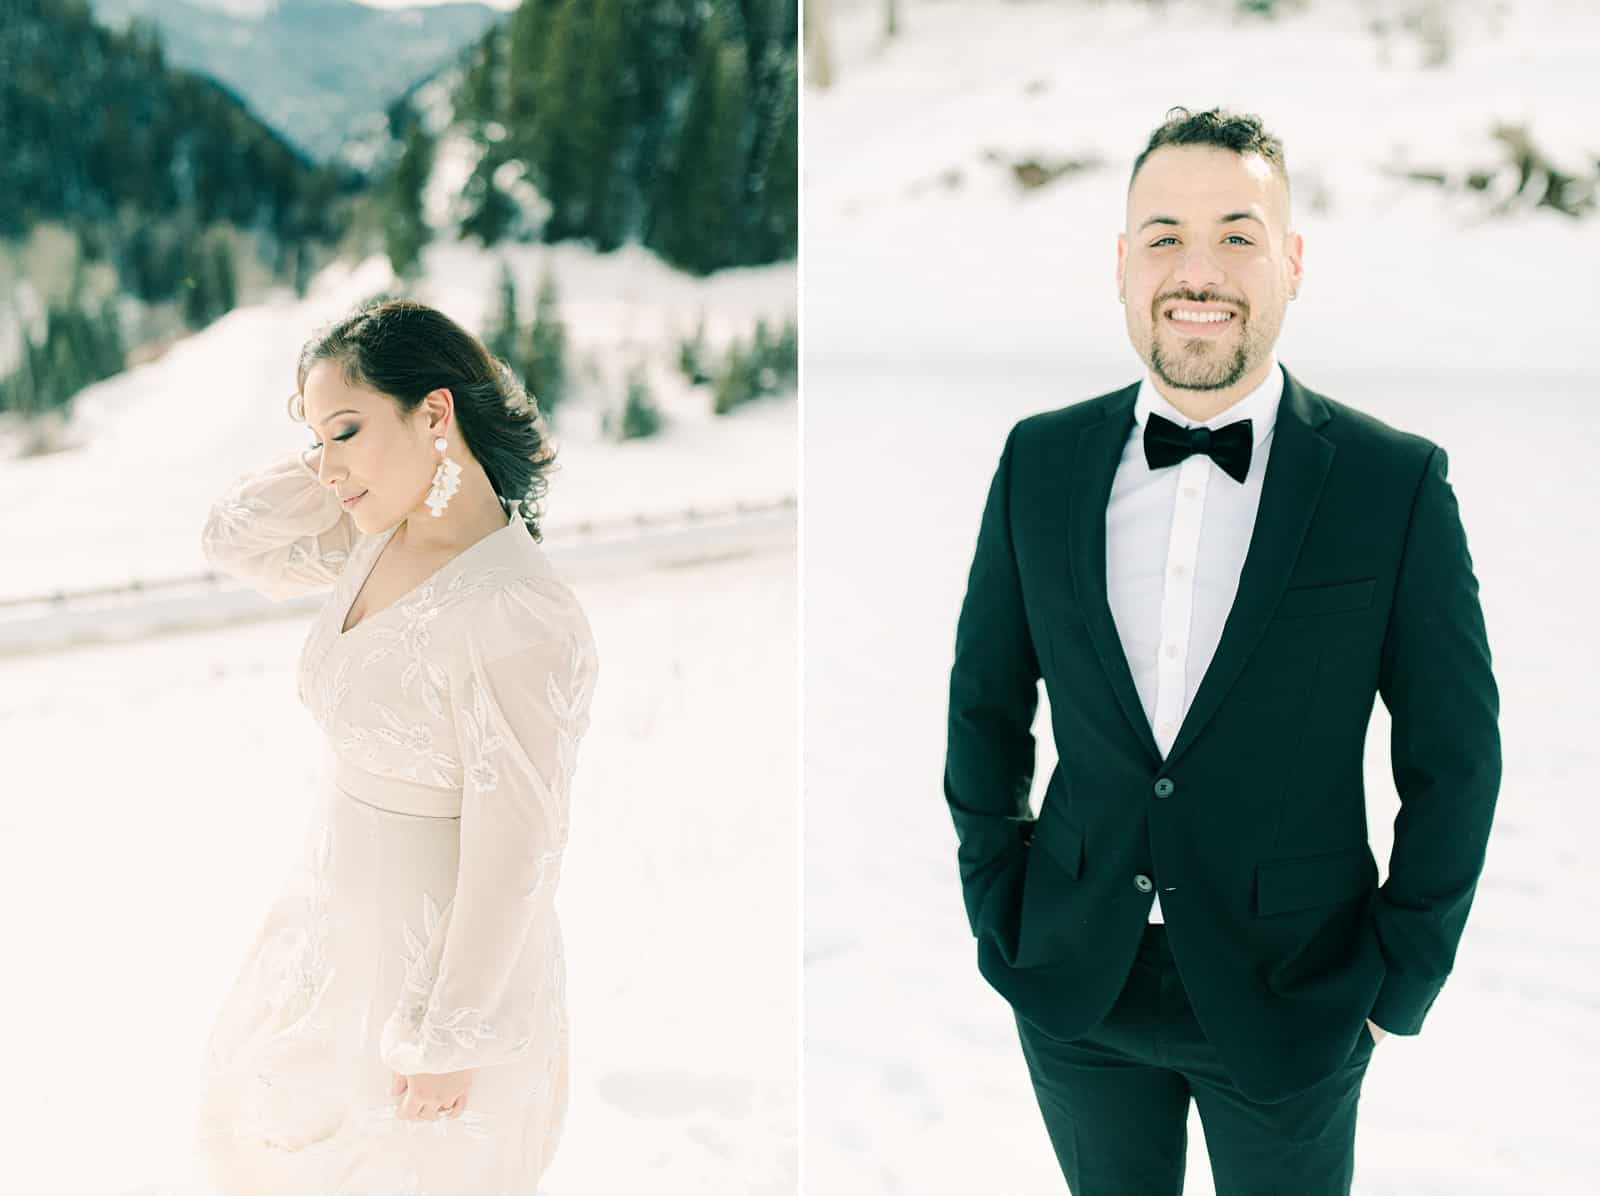 Outfits for winter bride and groom